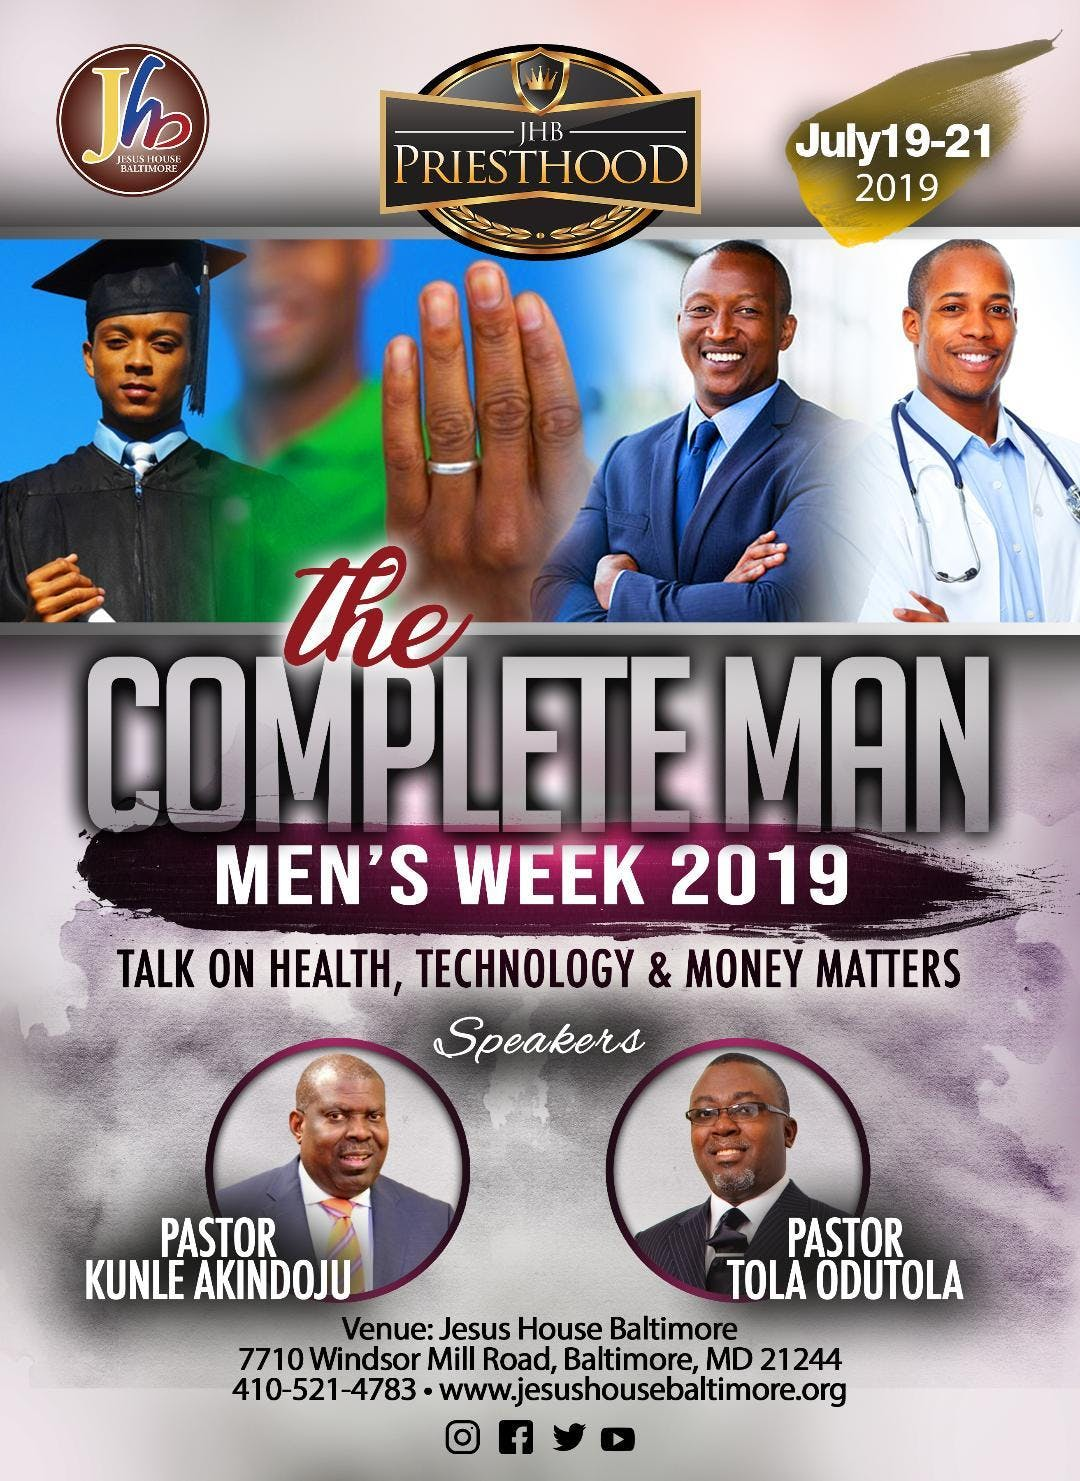 JHB Priesthood Presents: The Complete Man